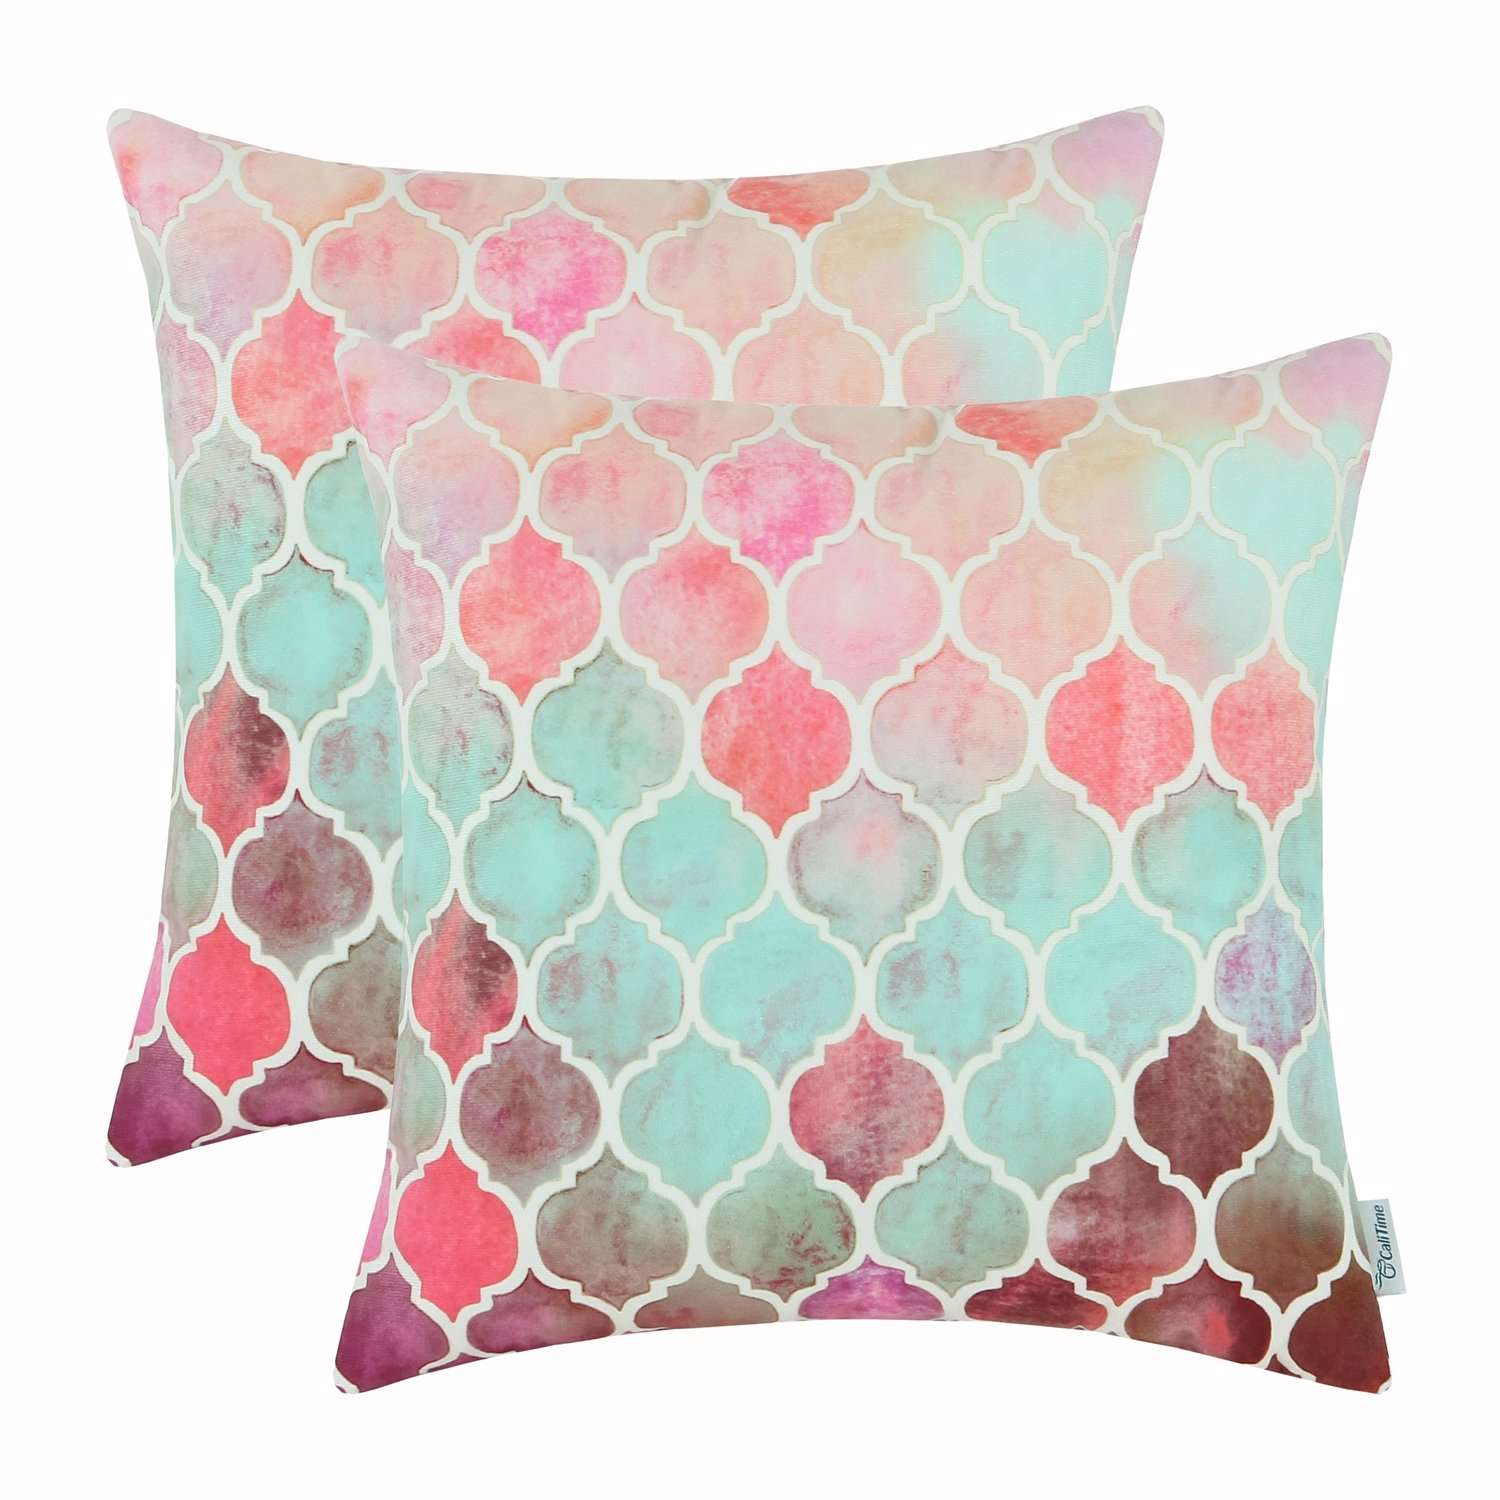 CaliTime Pack of 2 Cozy Throw Pillow Cases Covers Couch Bed Sofa Manual Hand Painted Colorful Geometric Trellis Chain Print 22 X 22 Inches Main Coral Cyan Wine